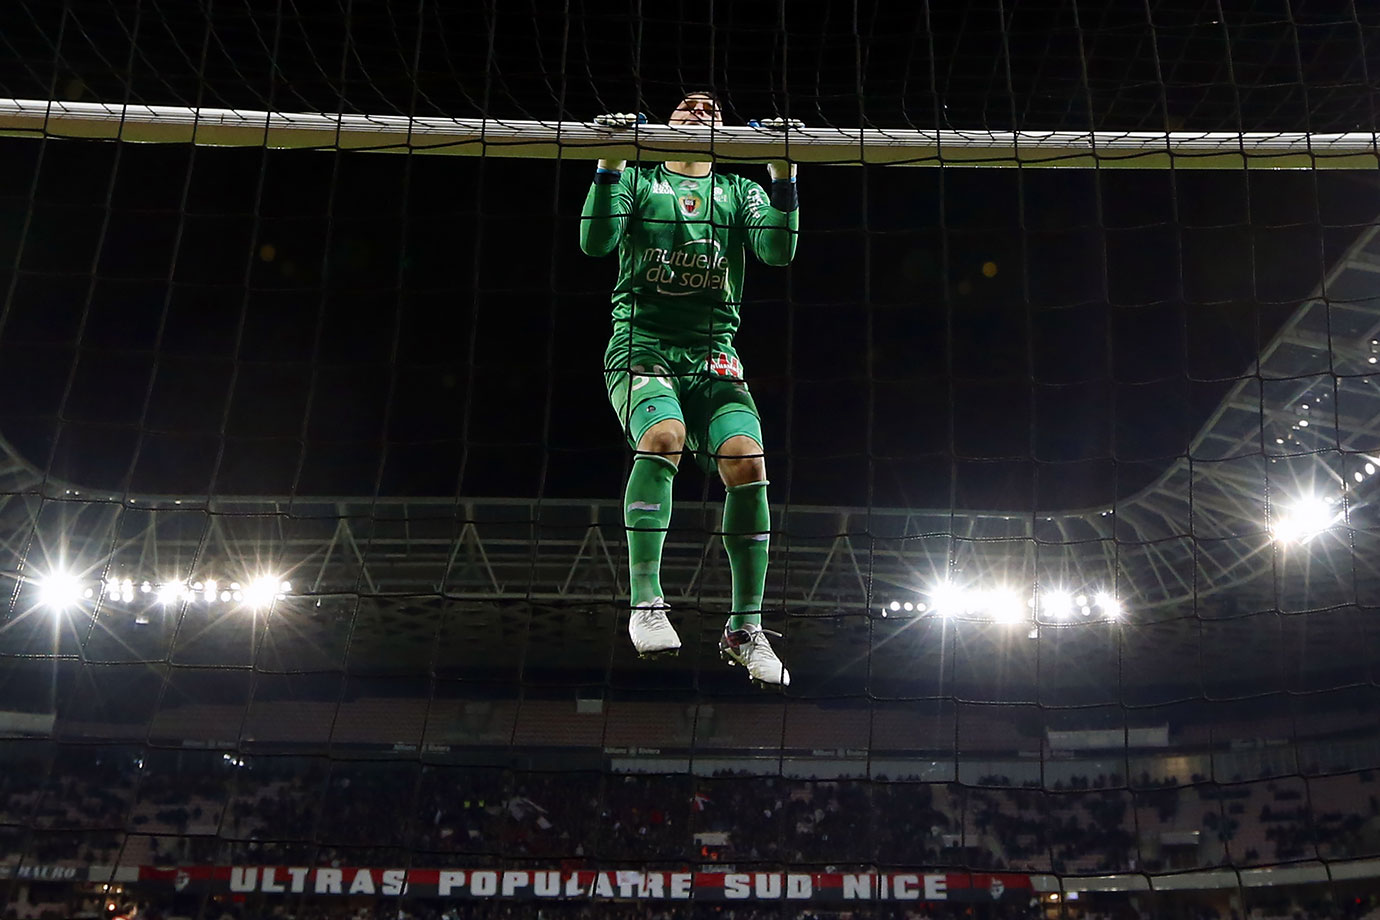 As OGC Nice's goalkeeper Yoan Cardinale swings from the goal post, he's probably wondering how he'll get down.